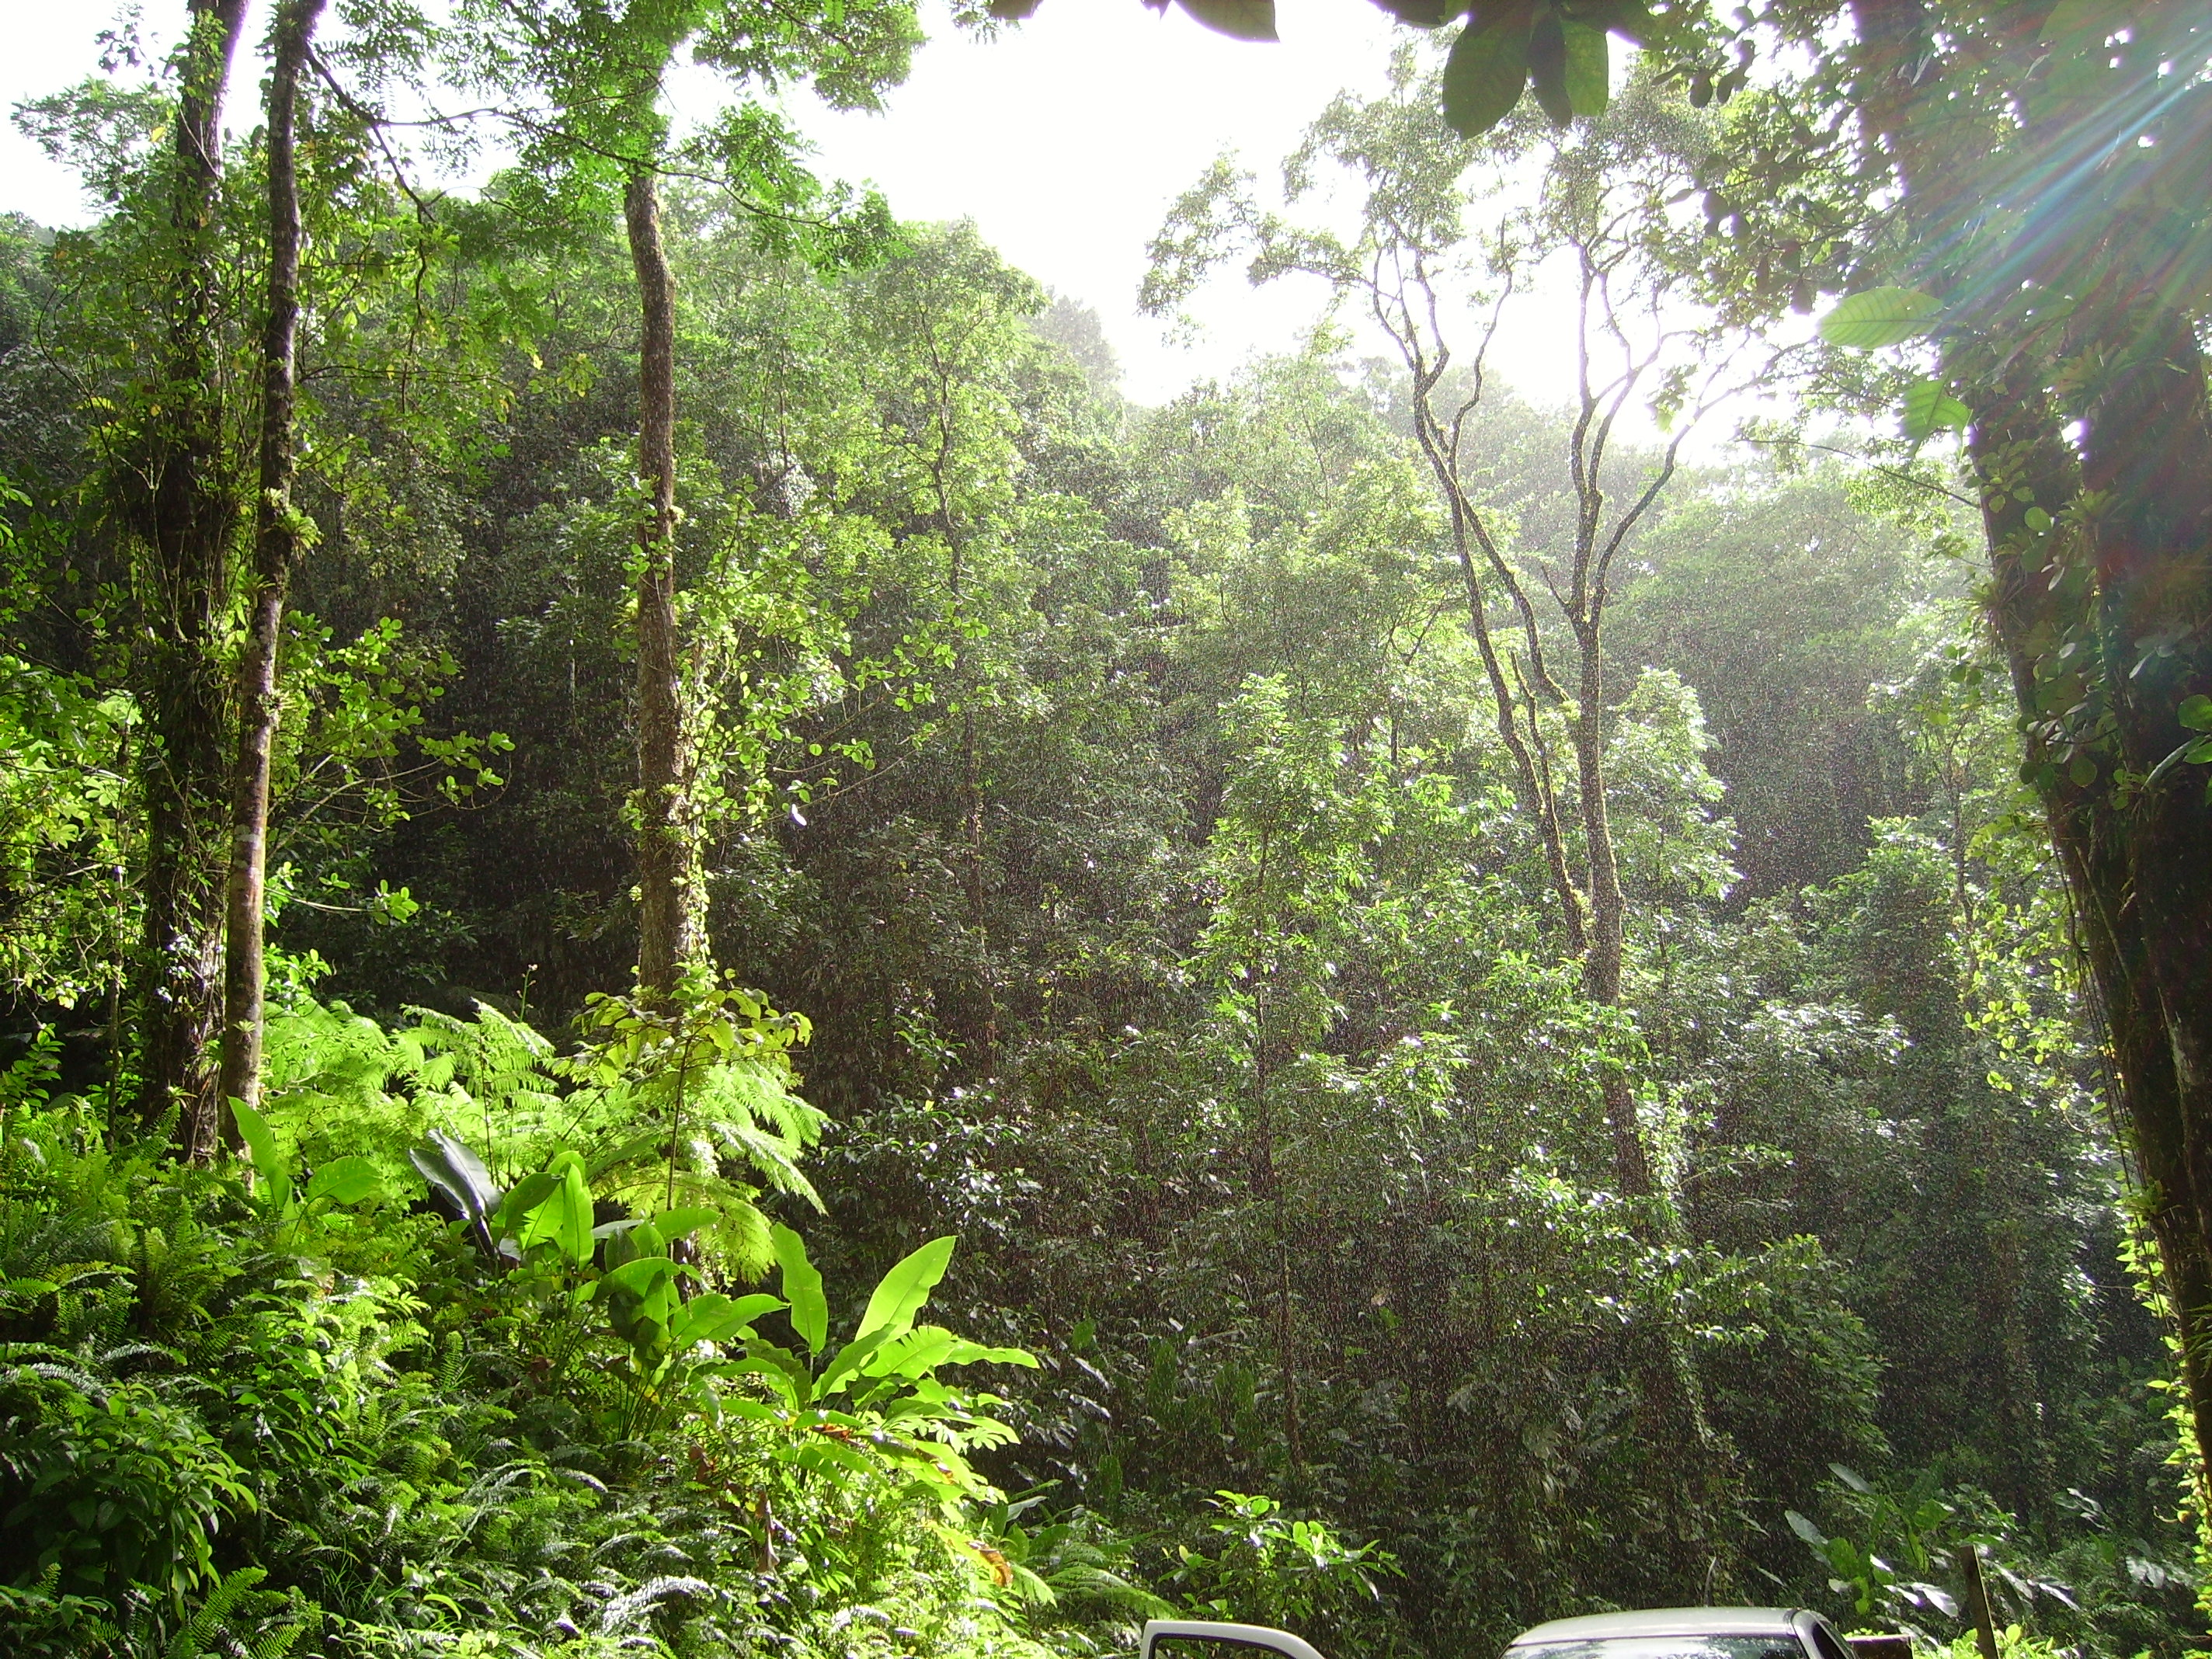 external image Tropical_forest.JPG